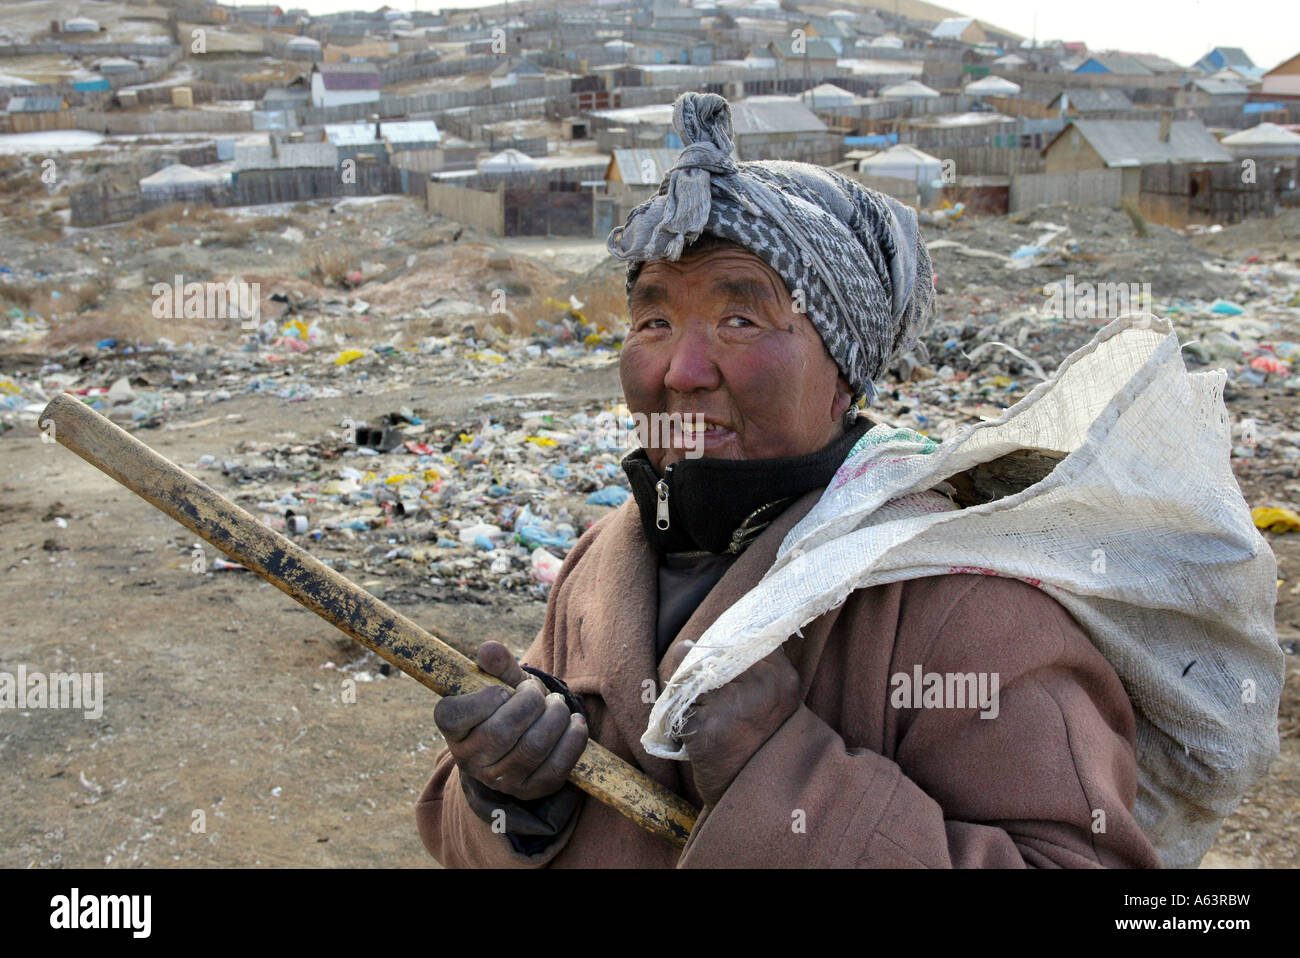 Mongolia, Ulan Bator - Beggar collects plastic bottles on a garbage dump - Stock Image